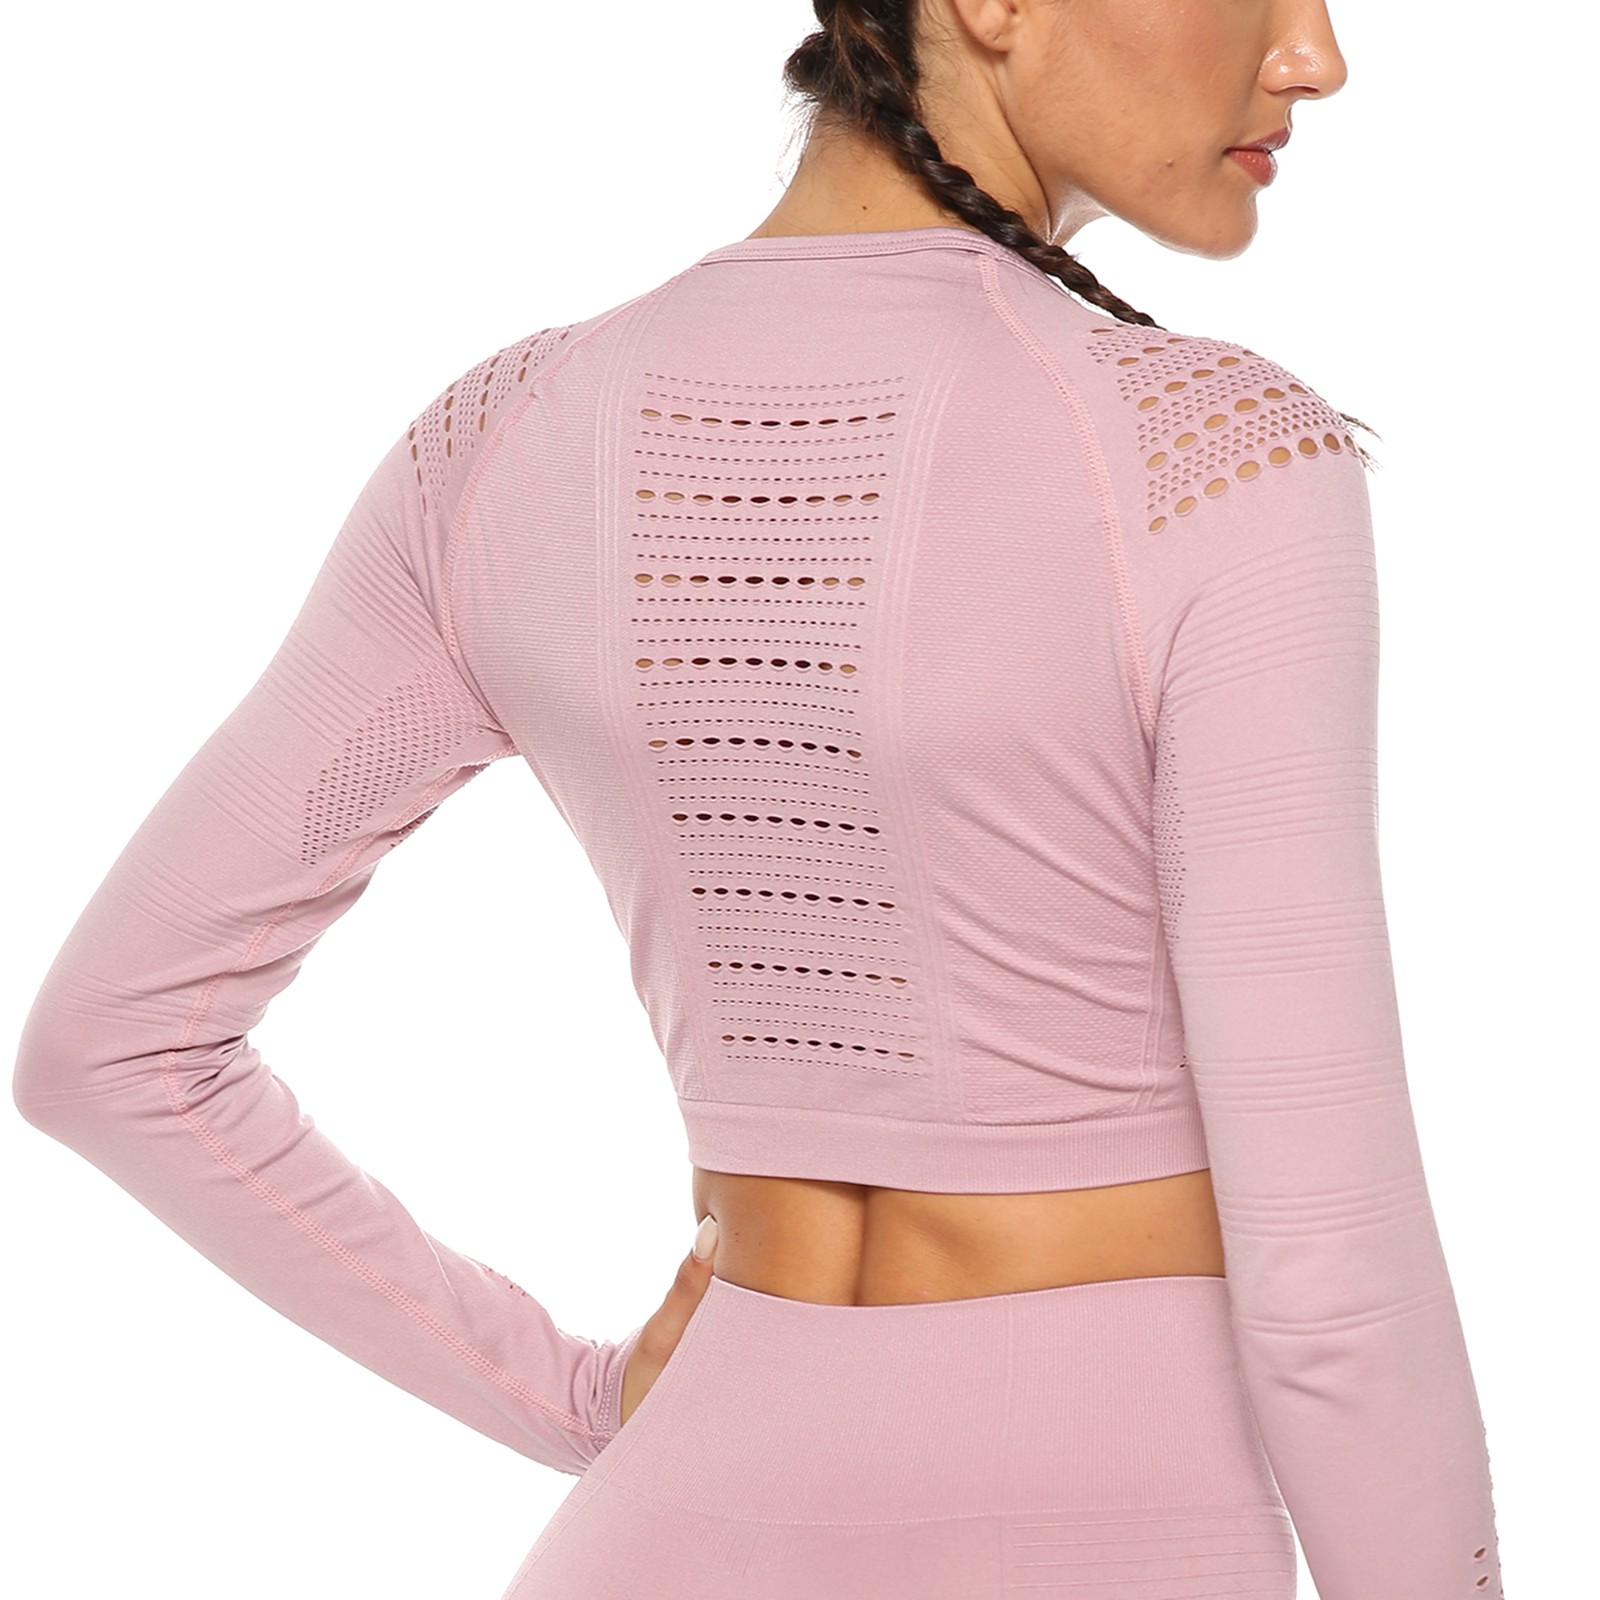 Womens Seamless Athletic Long Sleeves Yoga Shirt Breathable Quick Dry Running Sports Gym Workout Top